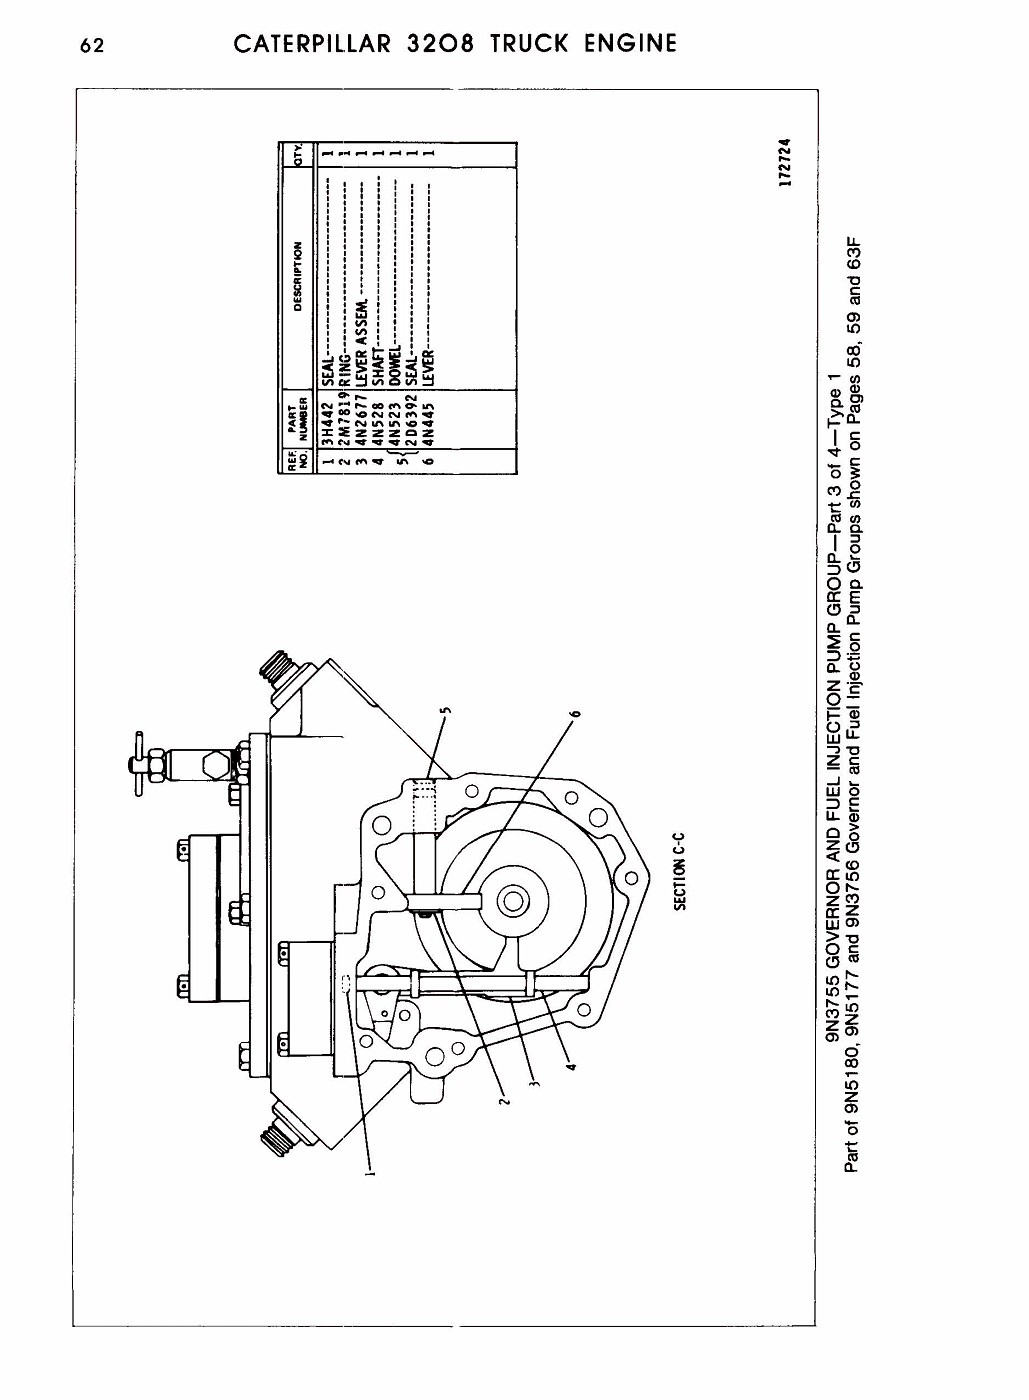 Photo 3208 Parts Manual Pagina 122 Cat Dieselengine Fuel Injector Diagram Album Modeltrucks25 Fotkicom And Video Sharing Made Easy